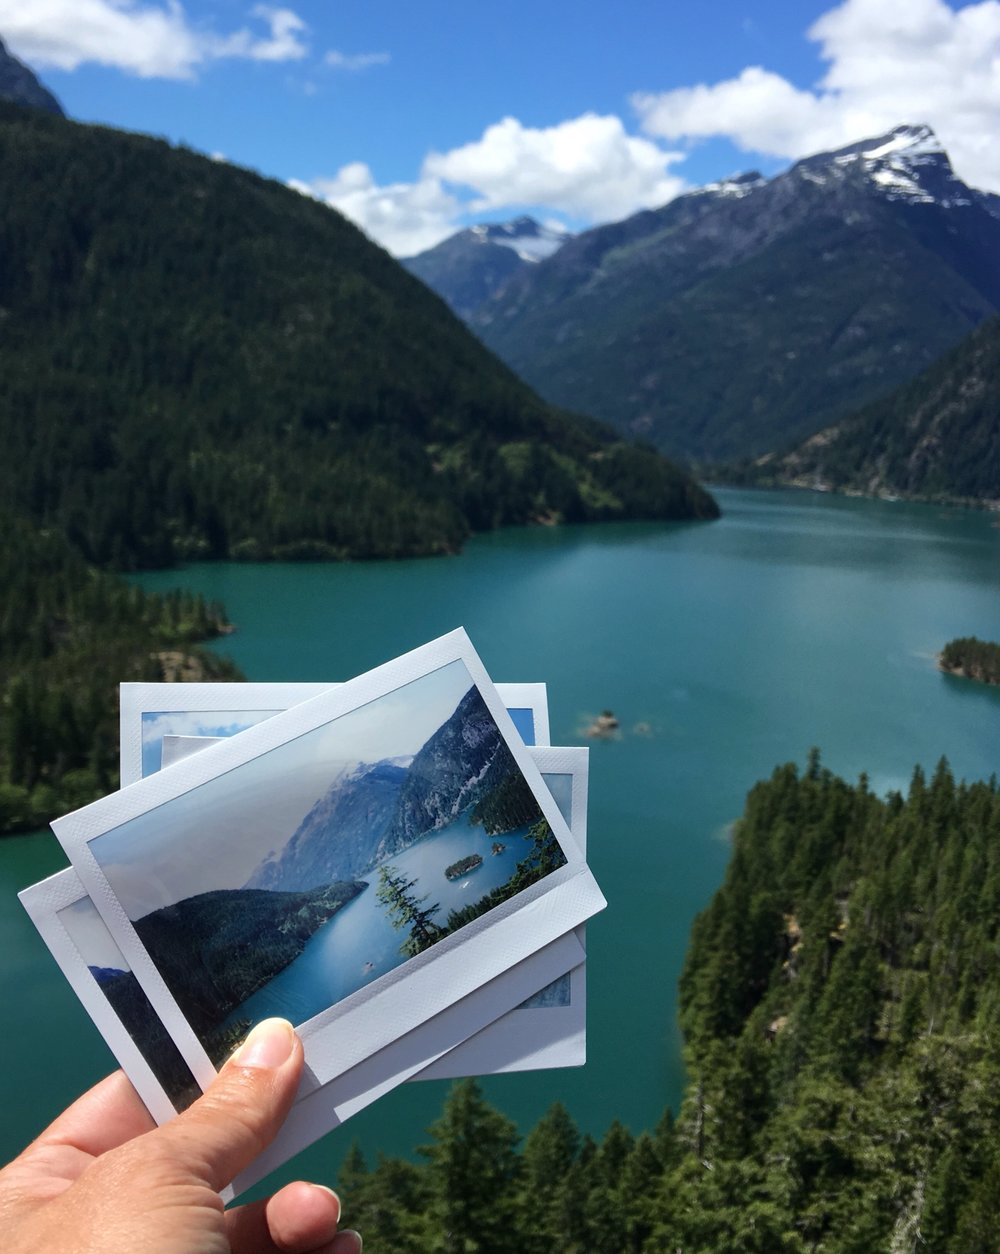 Snapshots of Diablo Lake in North Cascades National Park in Washington state. Photo credit: Stefanie Payne